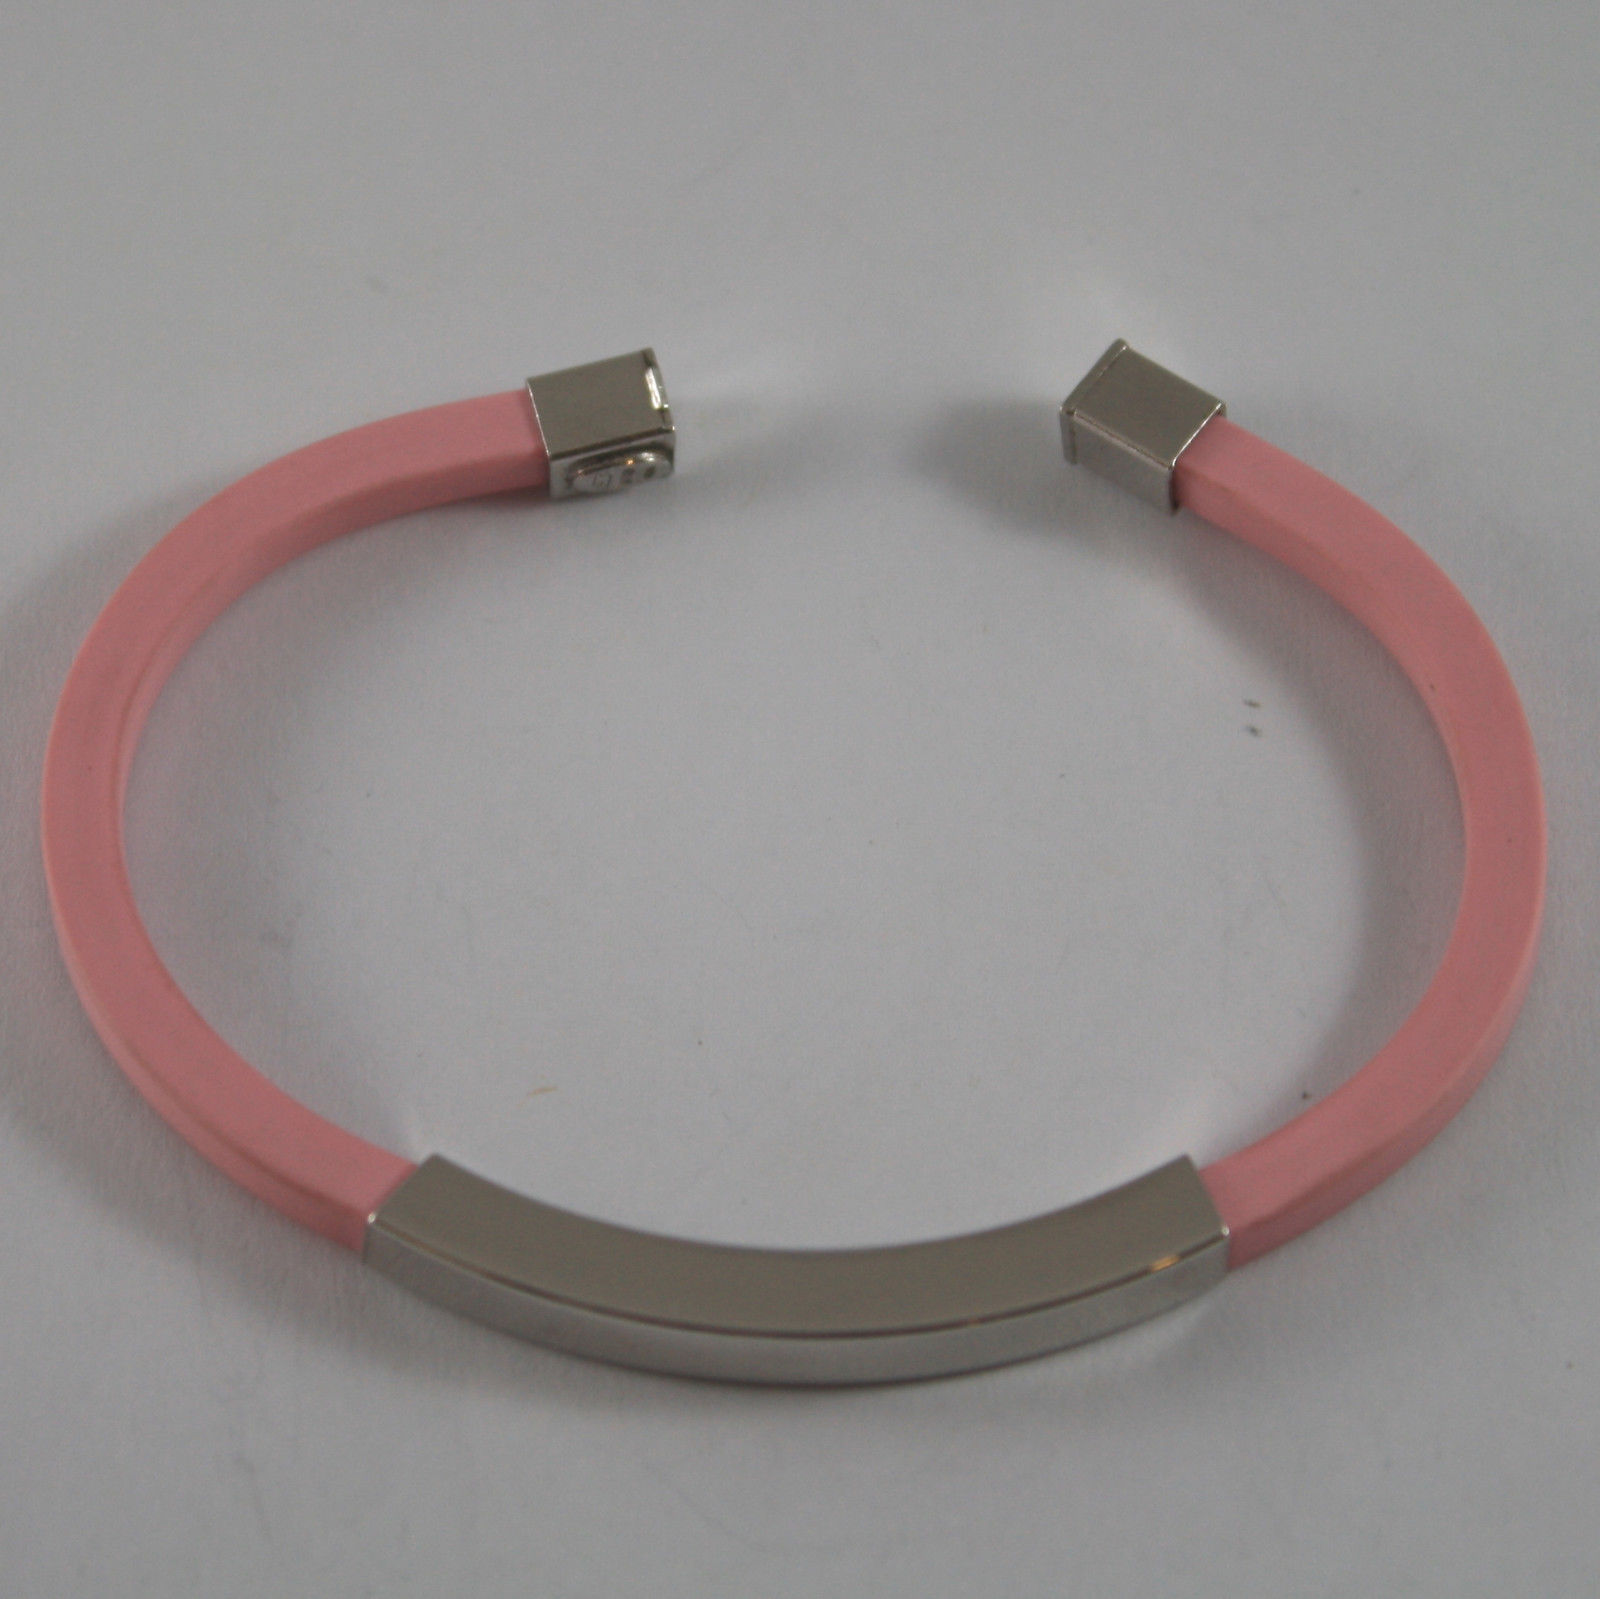 .925 RHODIUM SILVER RIGID BRACELET WITH PINK RUBBER AND PLATE